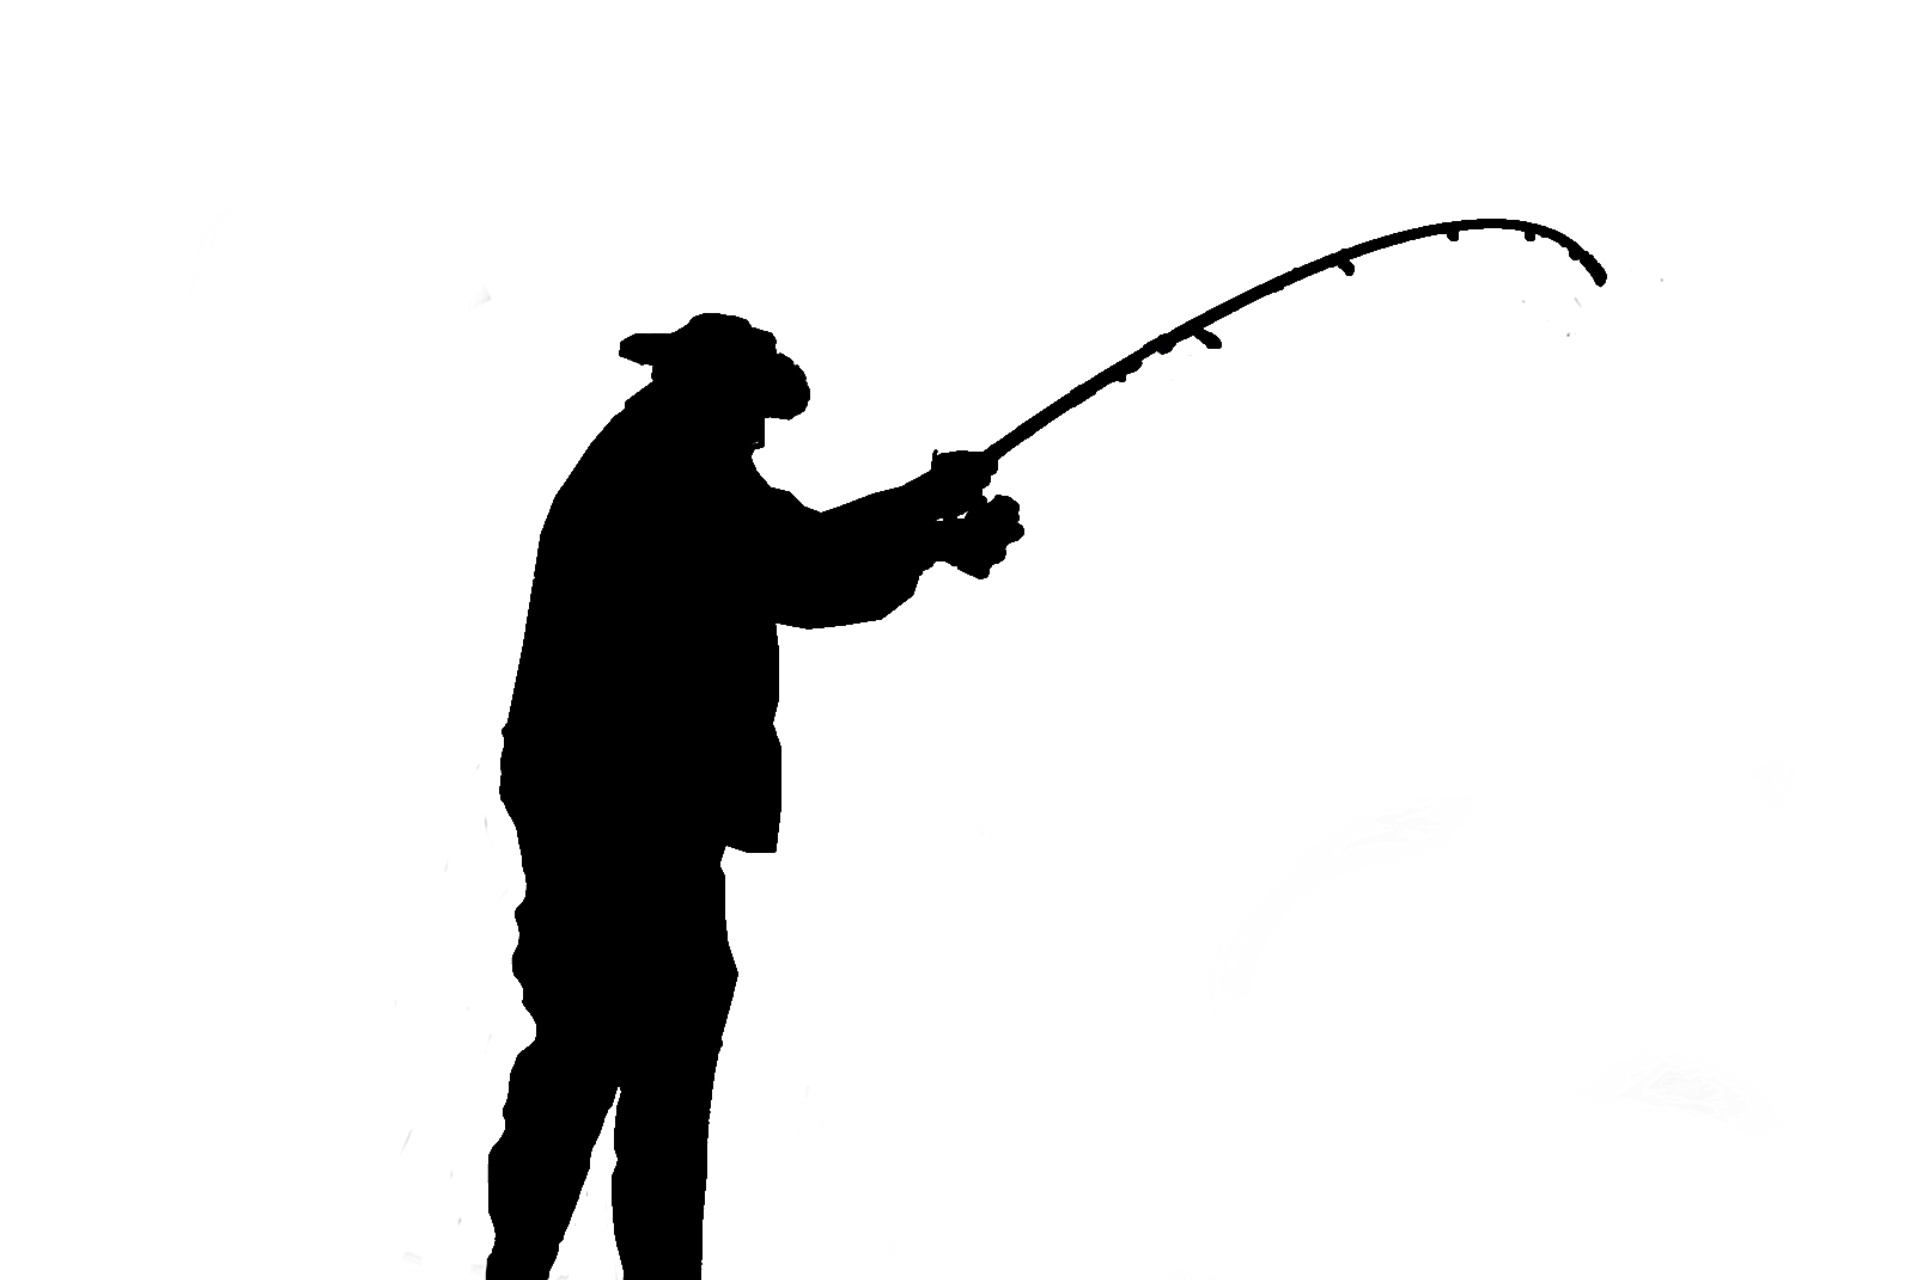 Fishing Silhouette Image